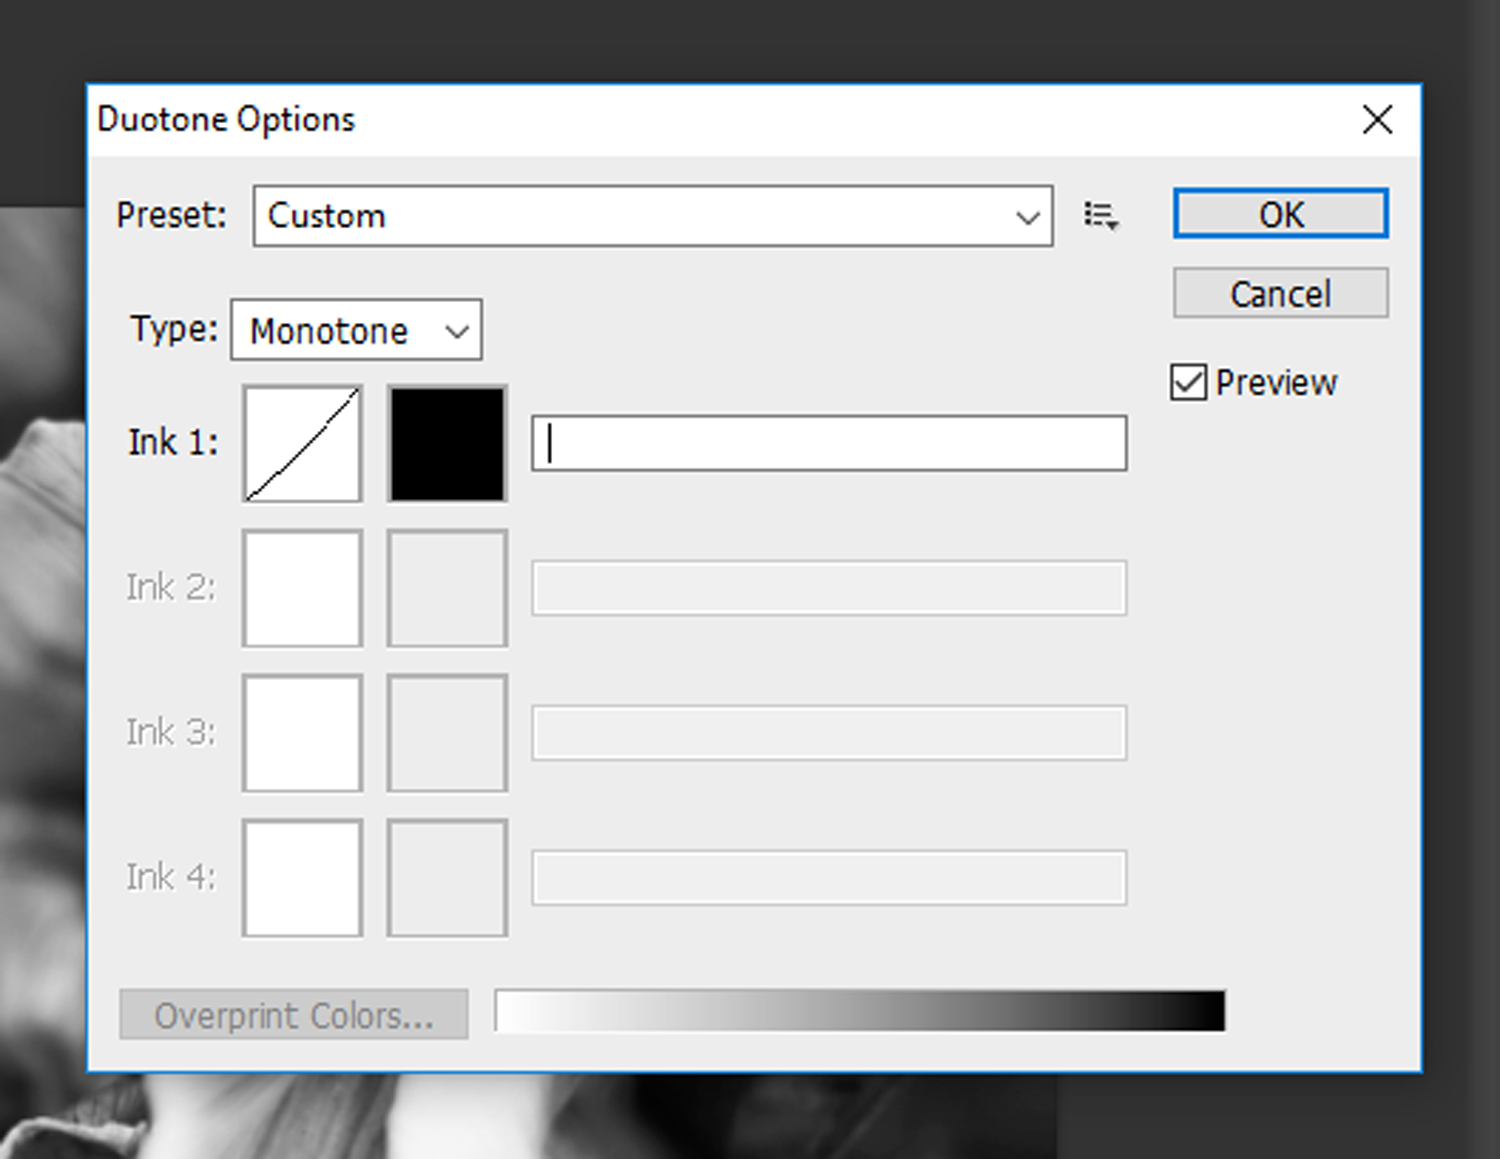 7 - How to Duotone a Photograph in Photoshop